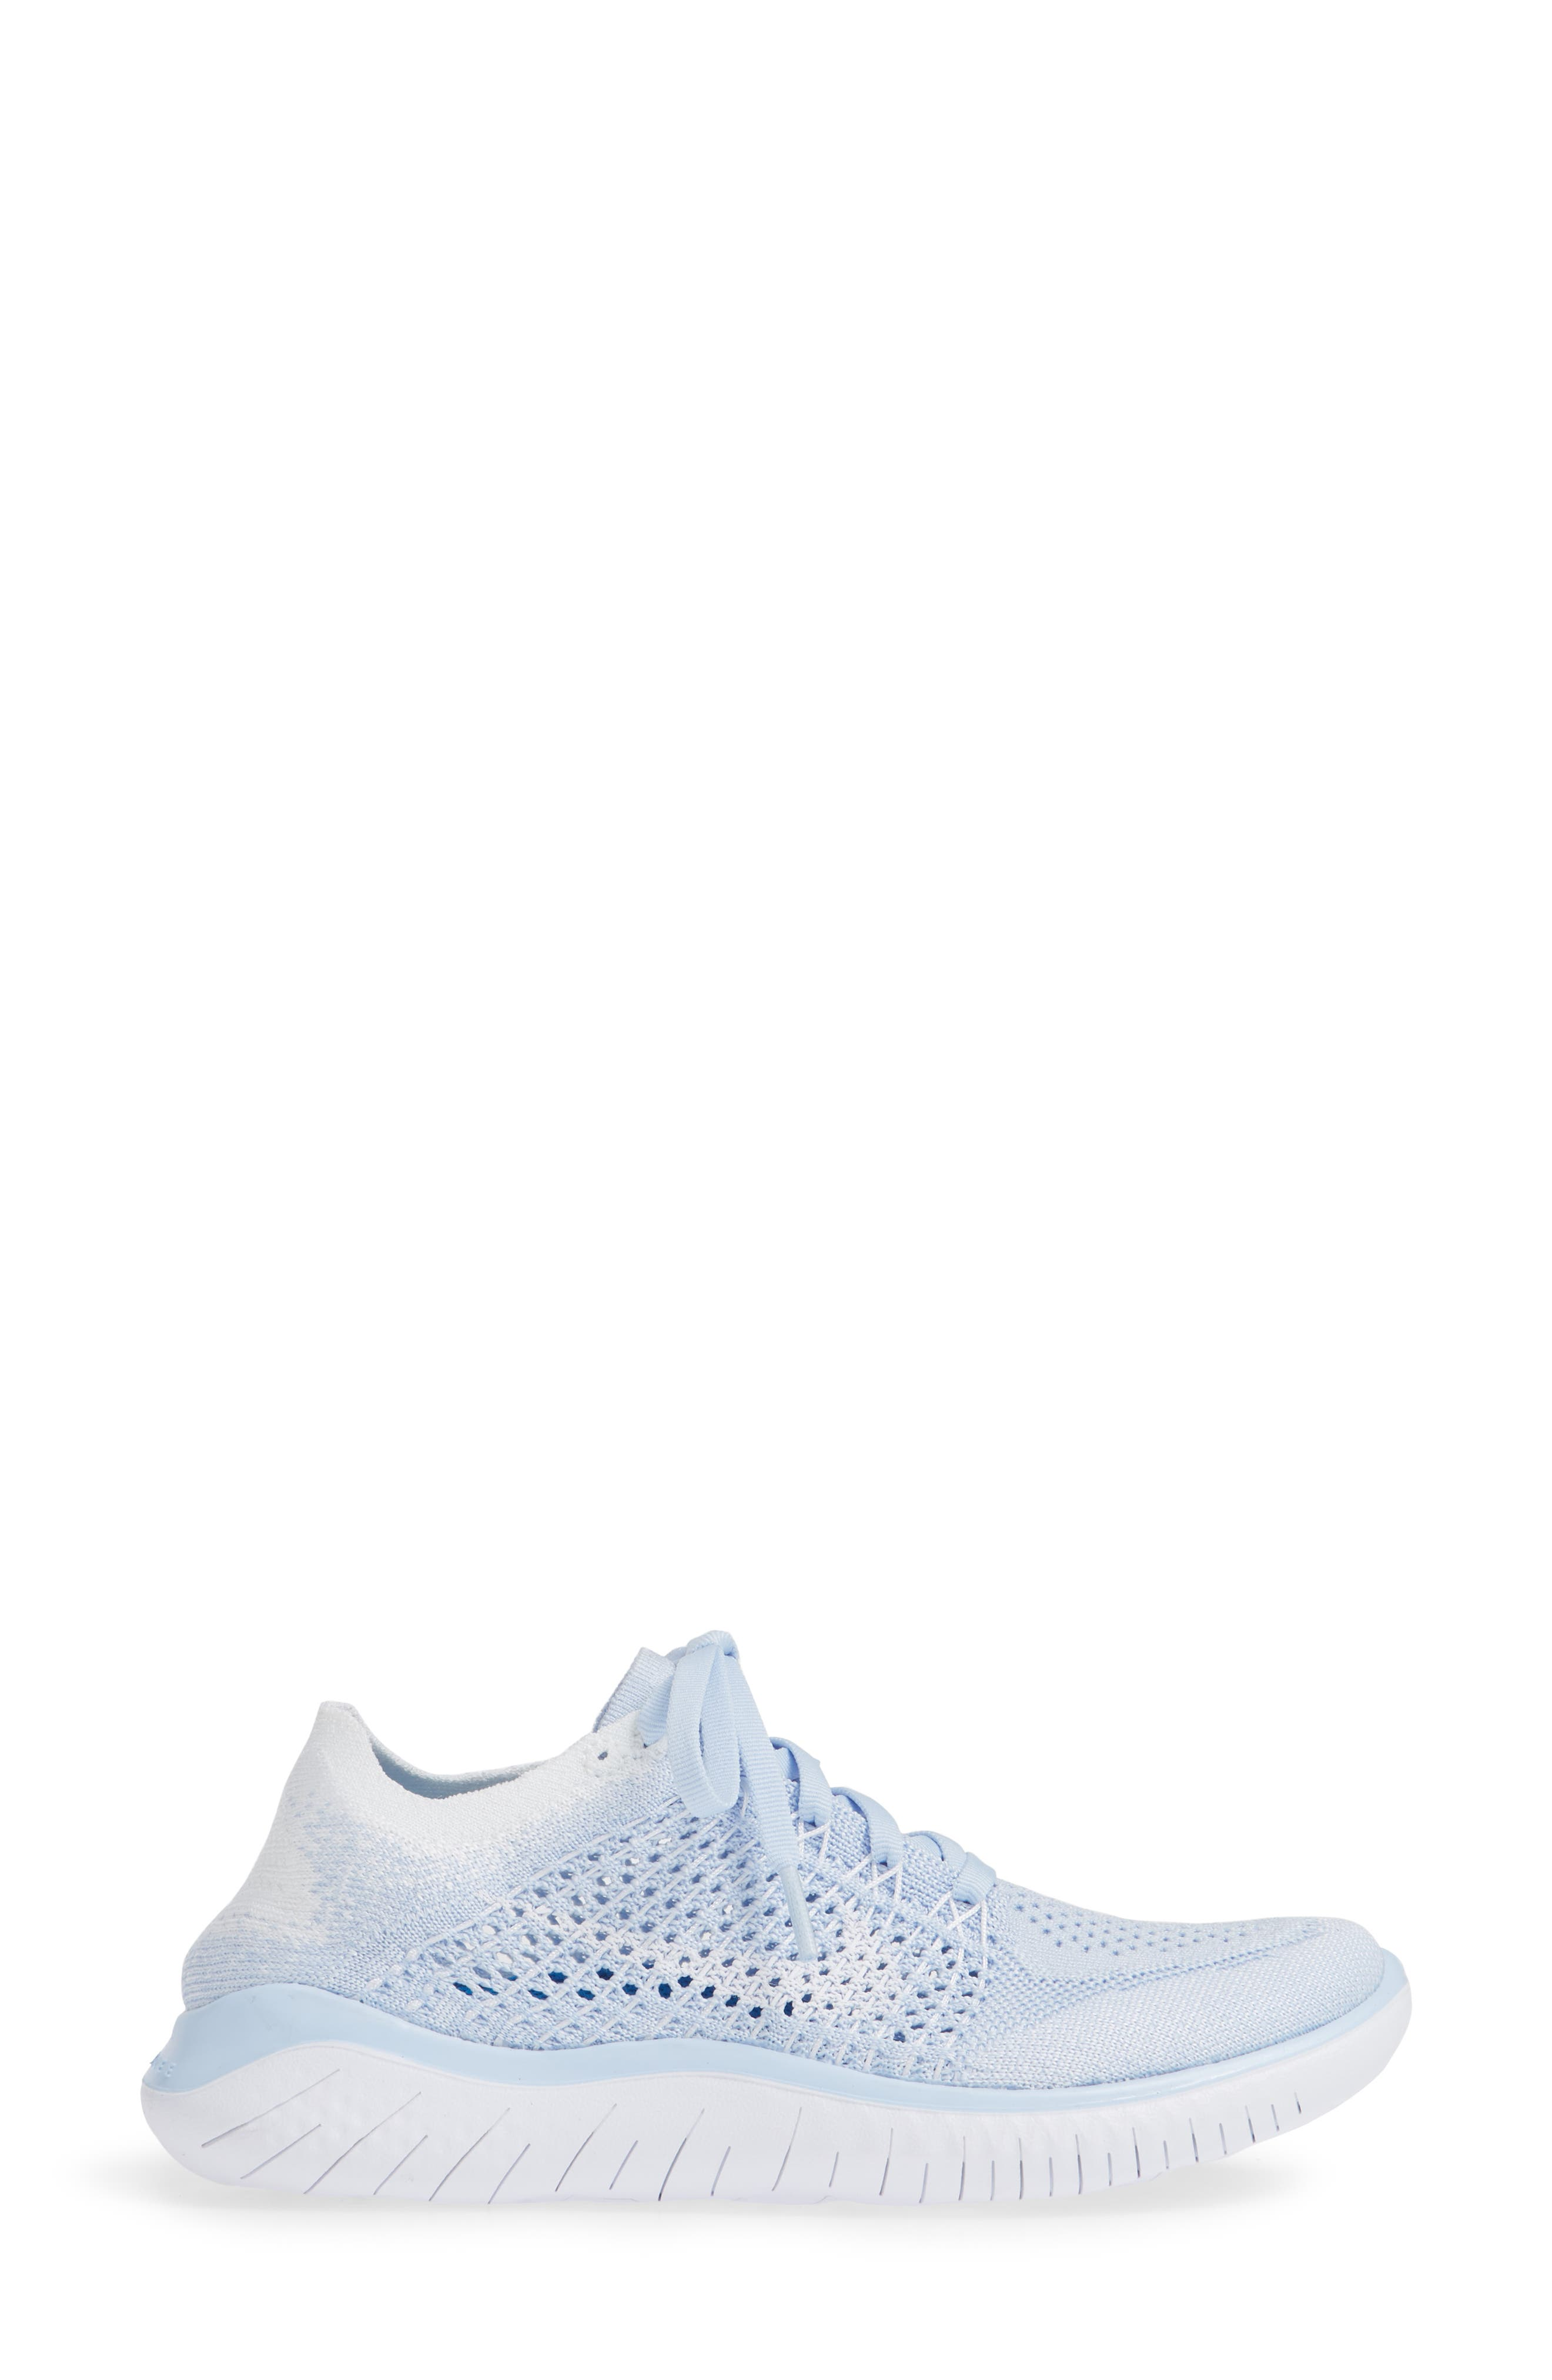 Free RN Flyknit 2018 Running Shoe,                             Alternate thumbnail 30, color,